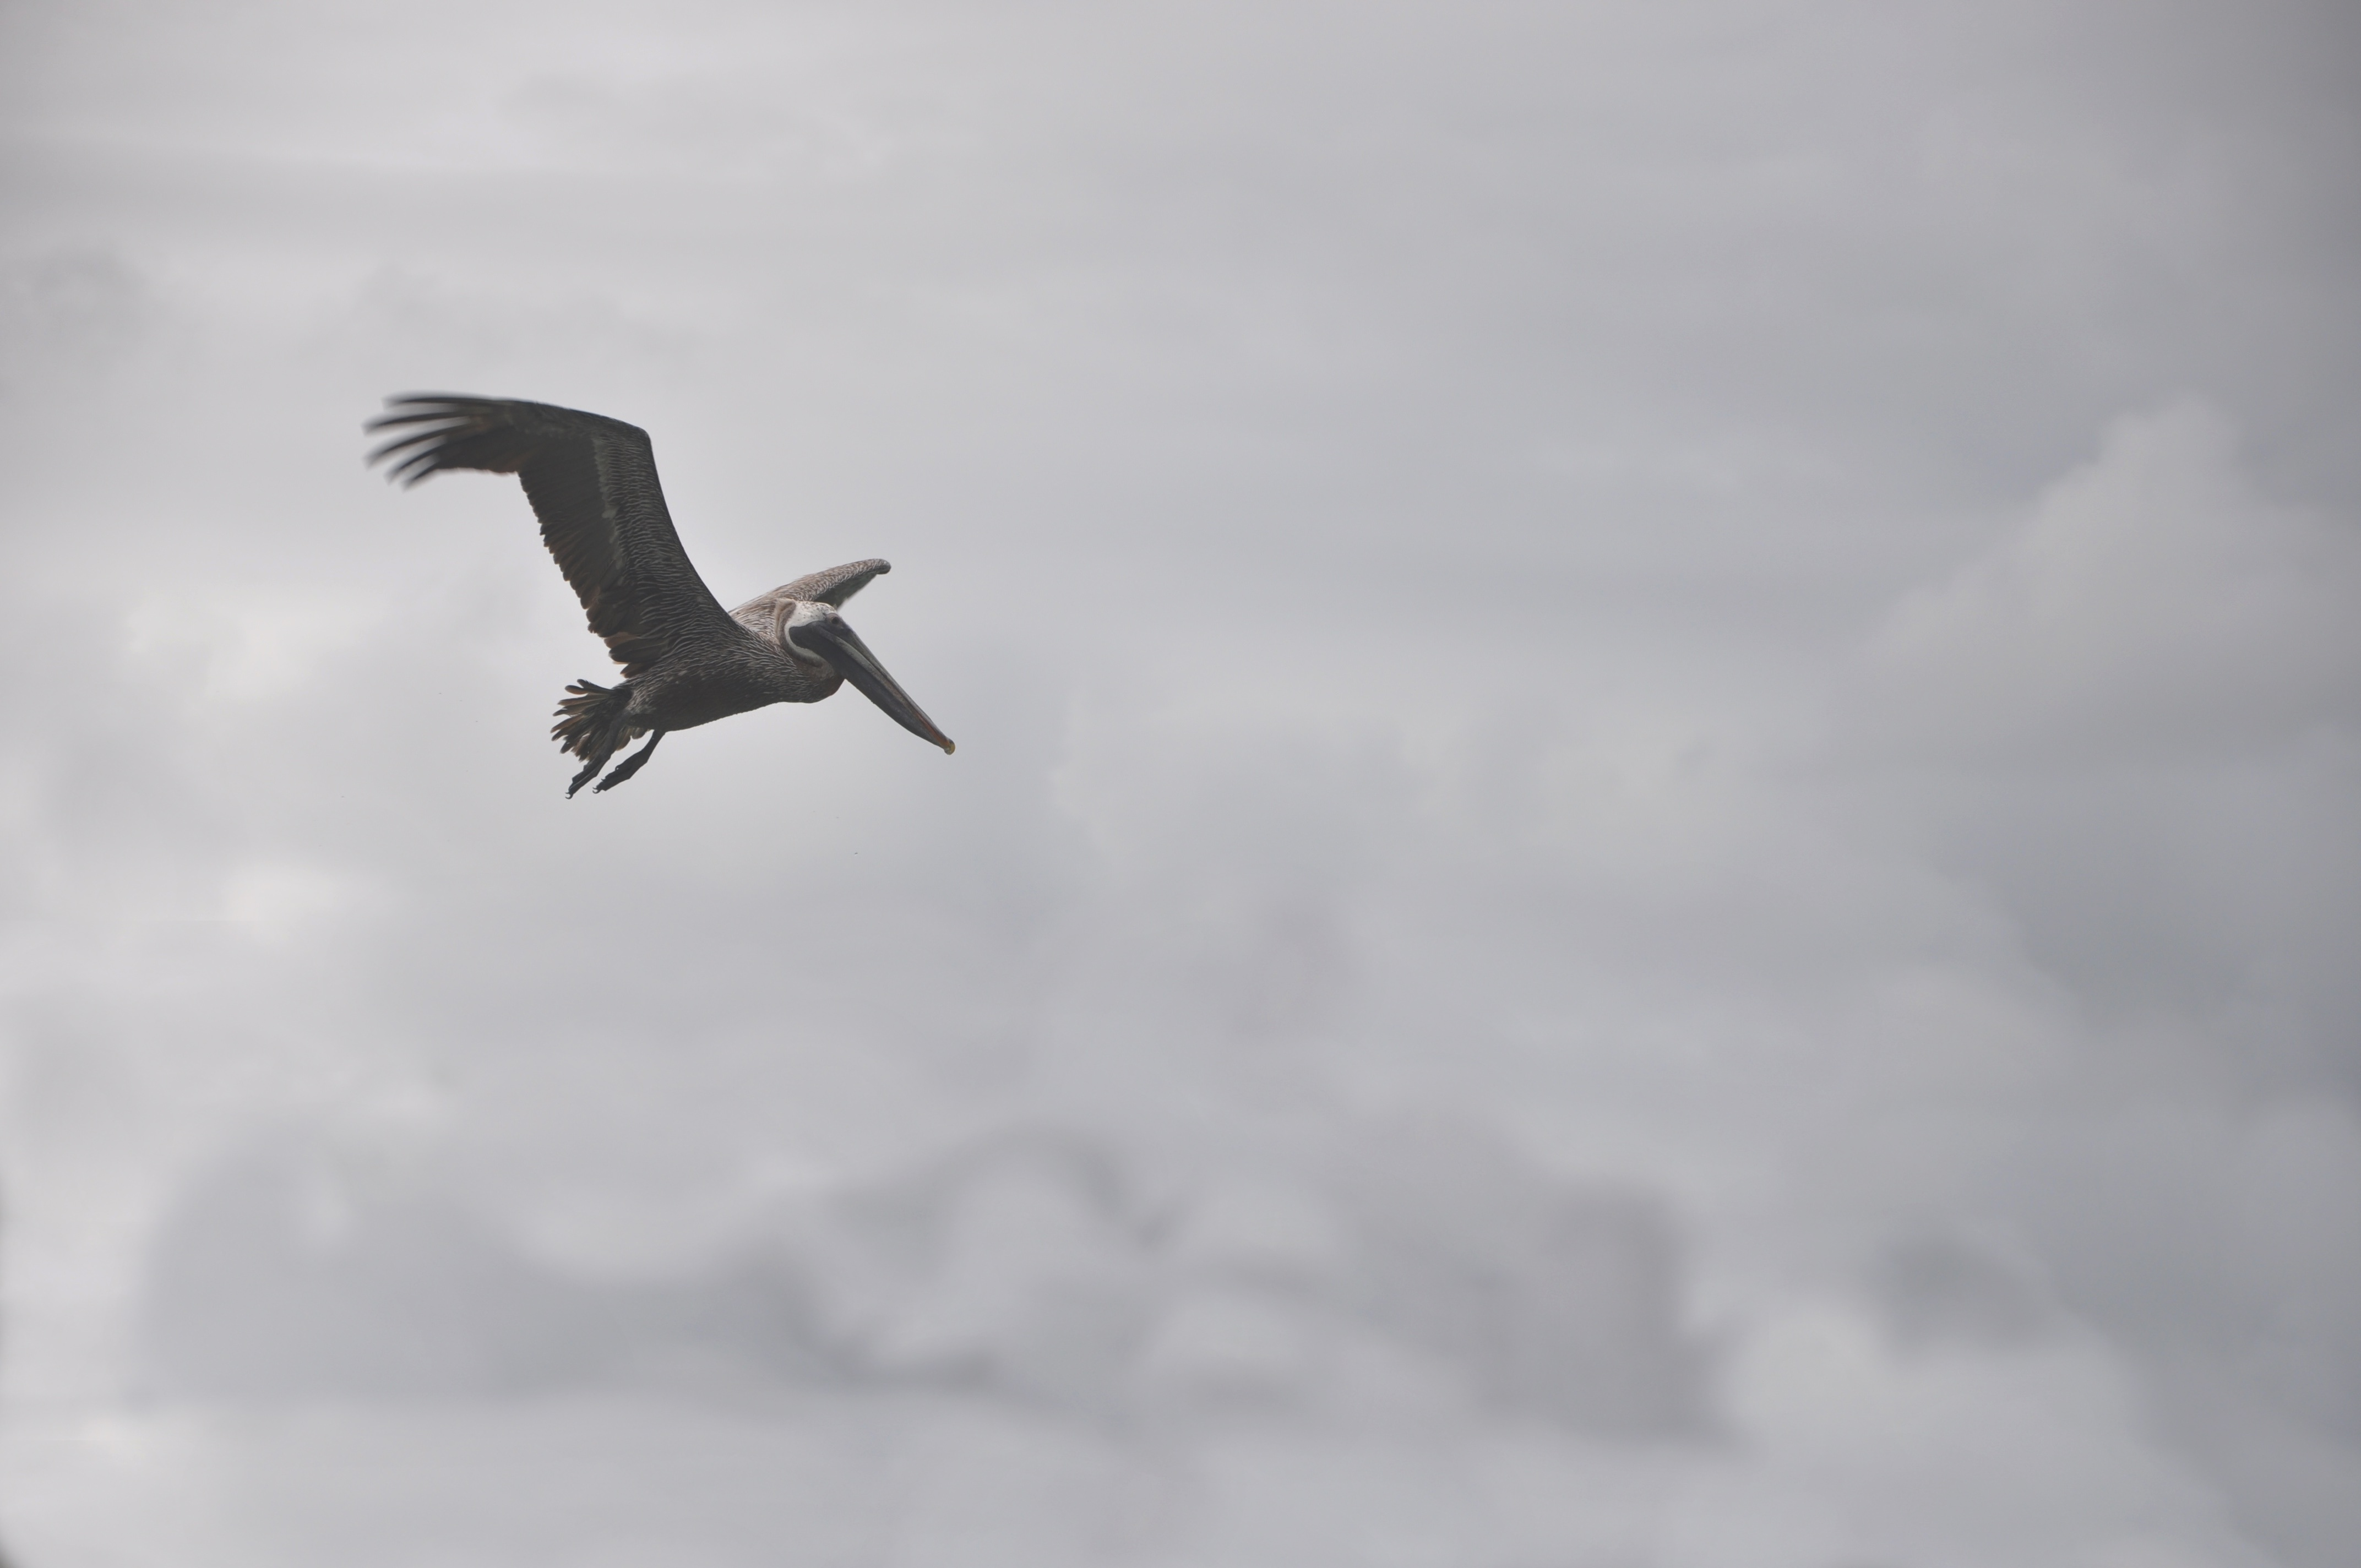 66015 download wallpaper Animals, Pelican, Bird, Flight, Clouds screensavers and pictures for free